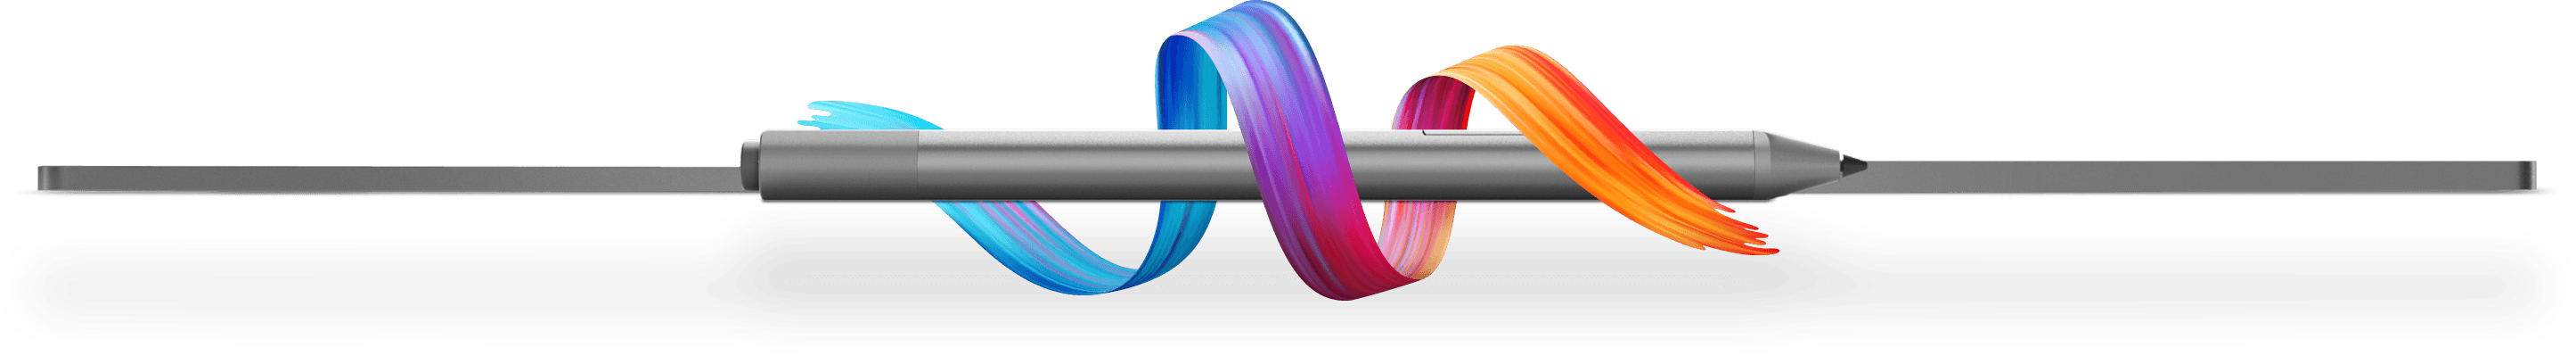 Lenovo Yoga Pen Wrapped in Colorful Ribbon